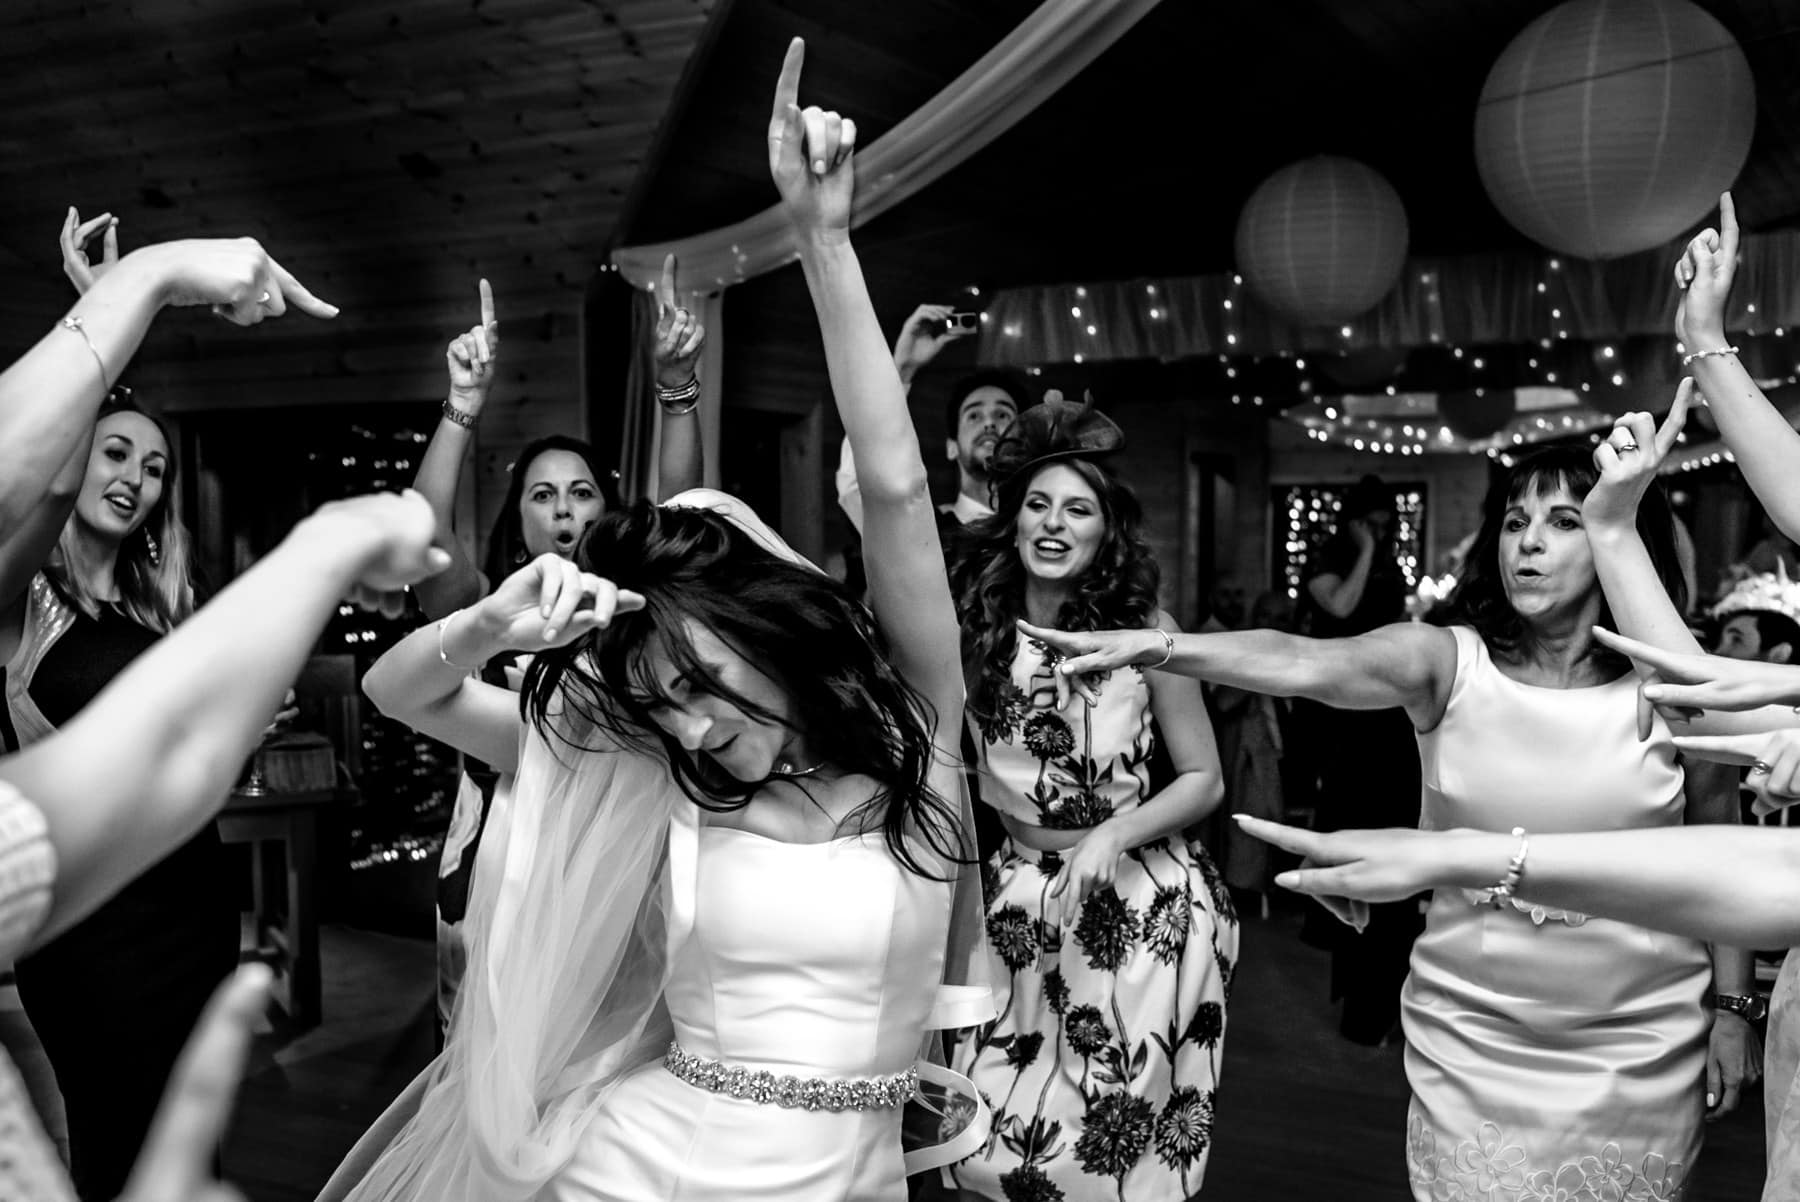 A black and white photo of a bride dancing surrounded by all her friends with their arms in the air